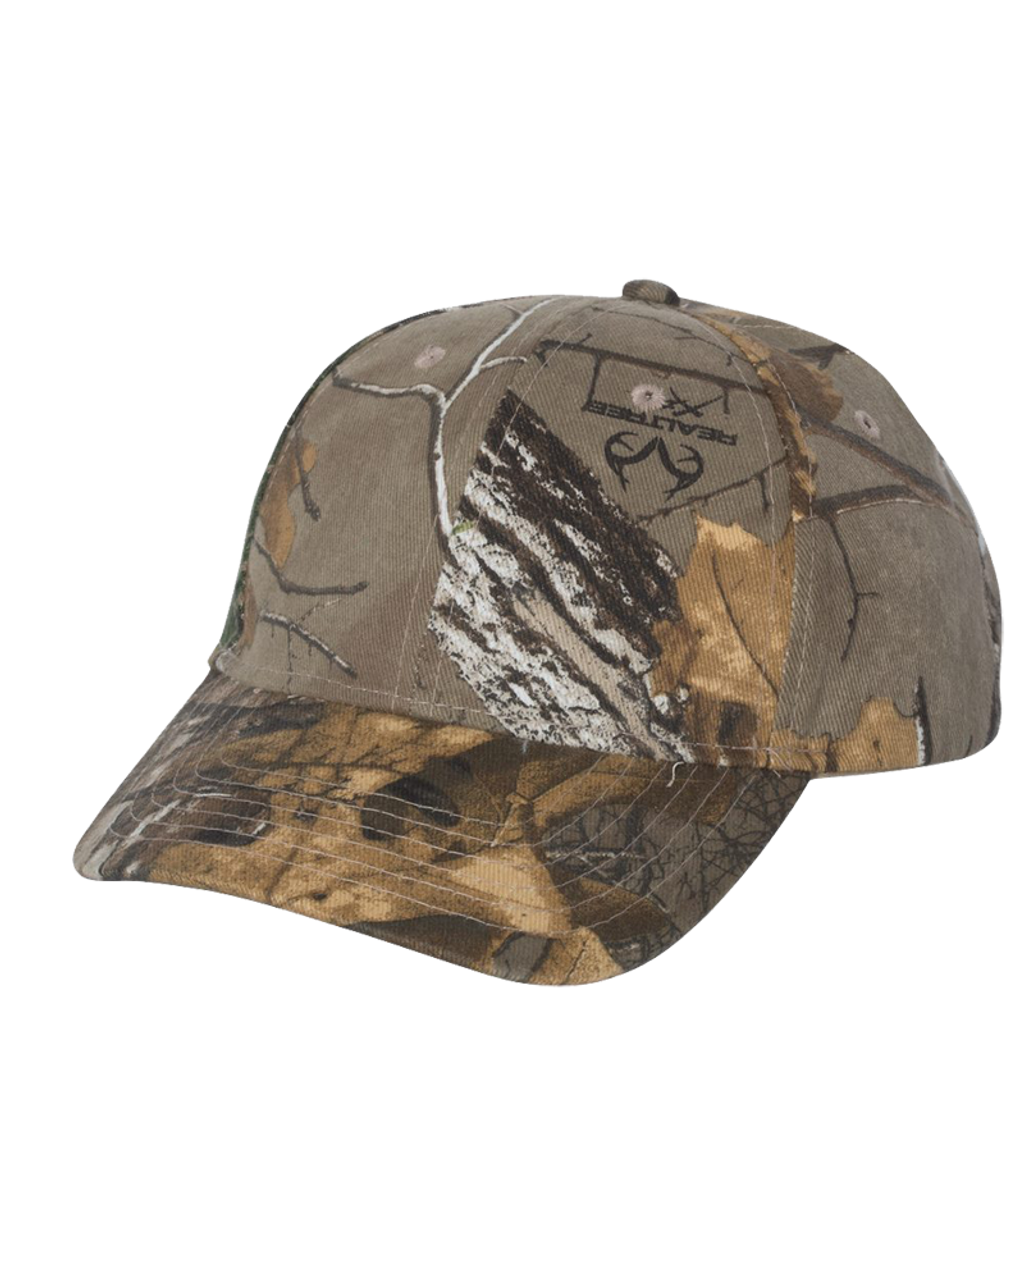 #LC10 in Realtree Xtra